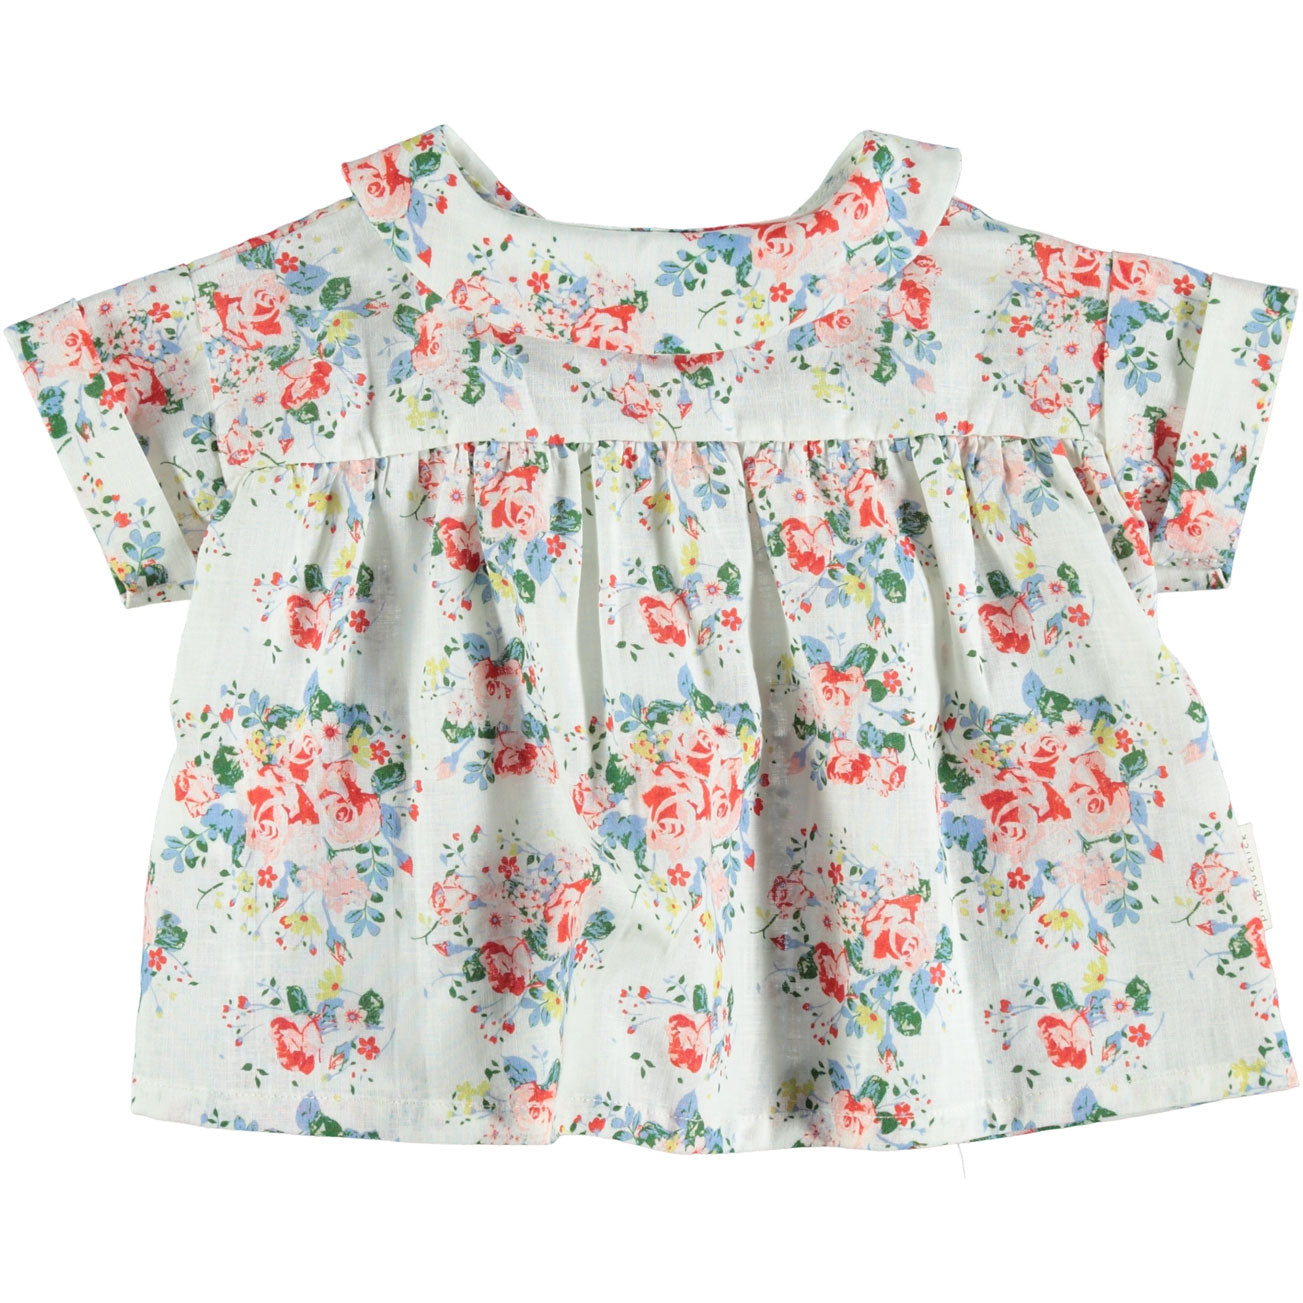 5a0b01aa6 Piupiuchick Flowers Peter Pan Collar Baby Blouse